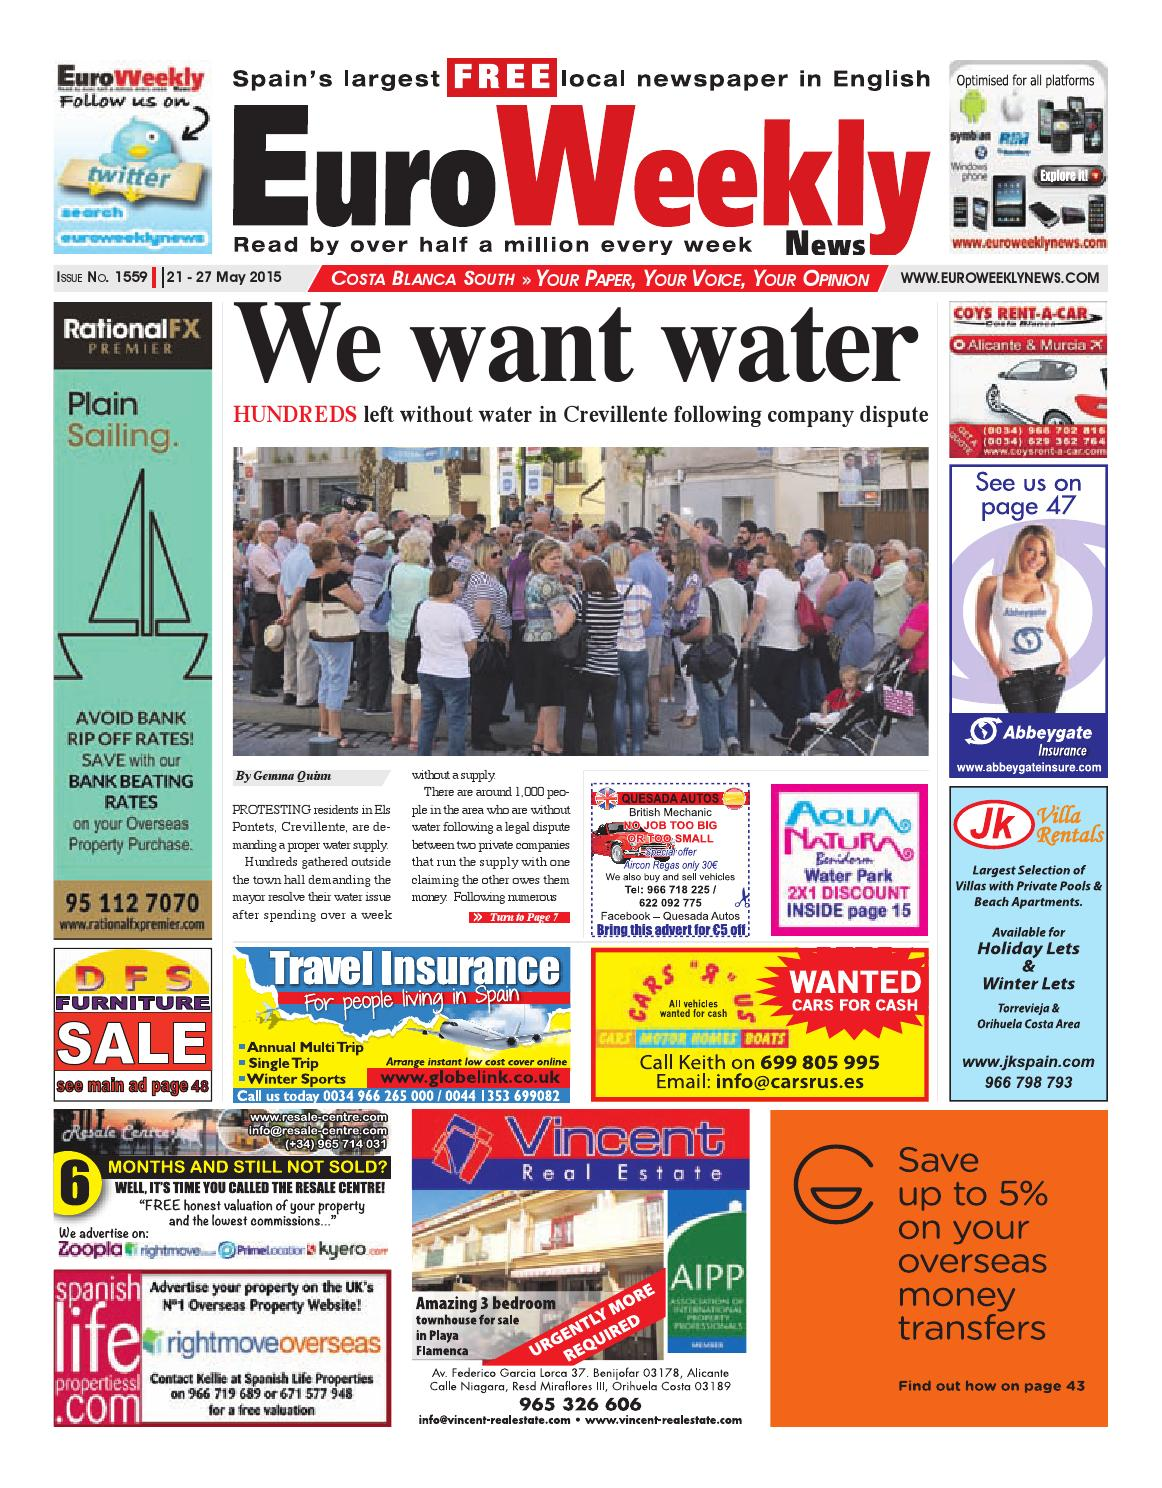 Euro weekly news costa blanca south 21 27 may 2015 issue 1559 by euro weekly news costa blanca south 21 27 may 2015 issue 1559 by euro weekly news media sa issuu fandeluxe Choice Image